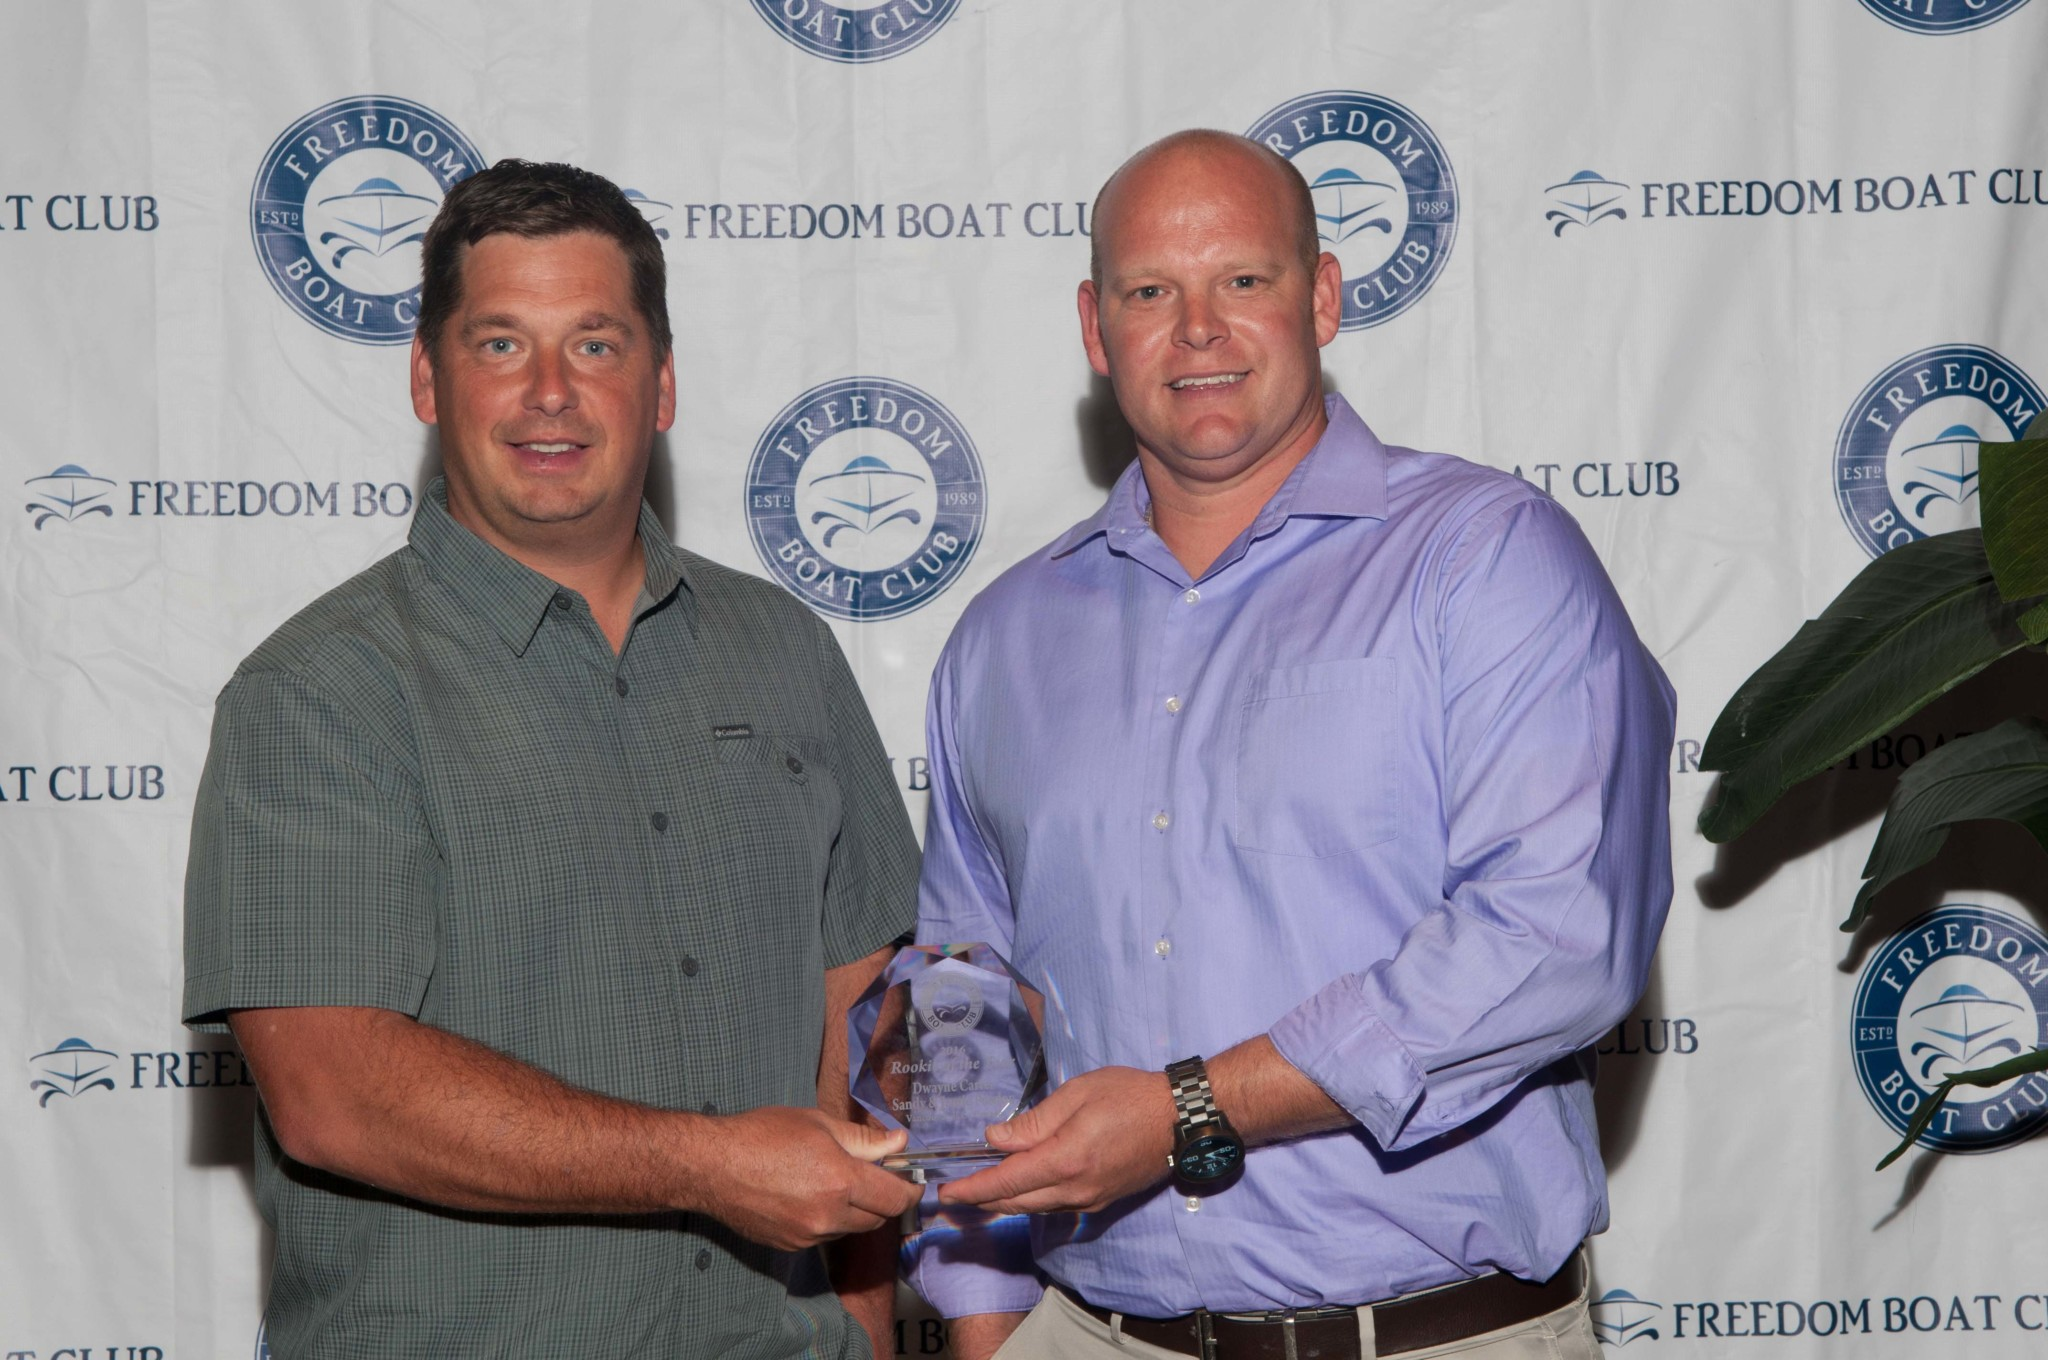 Vancouver Freedom Boat Club franchise wins rookie of the year award